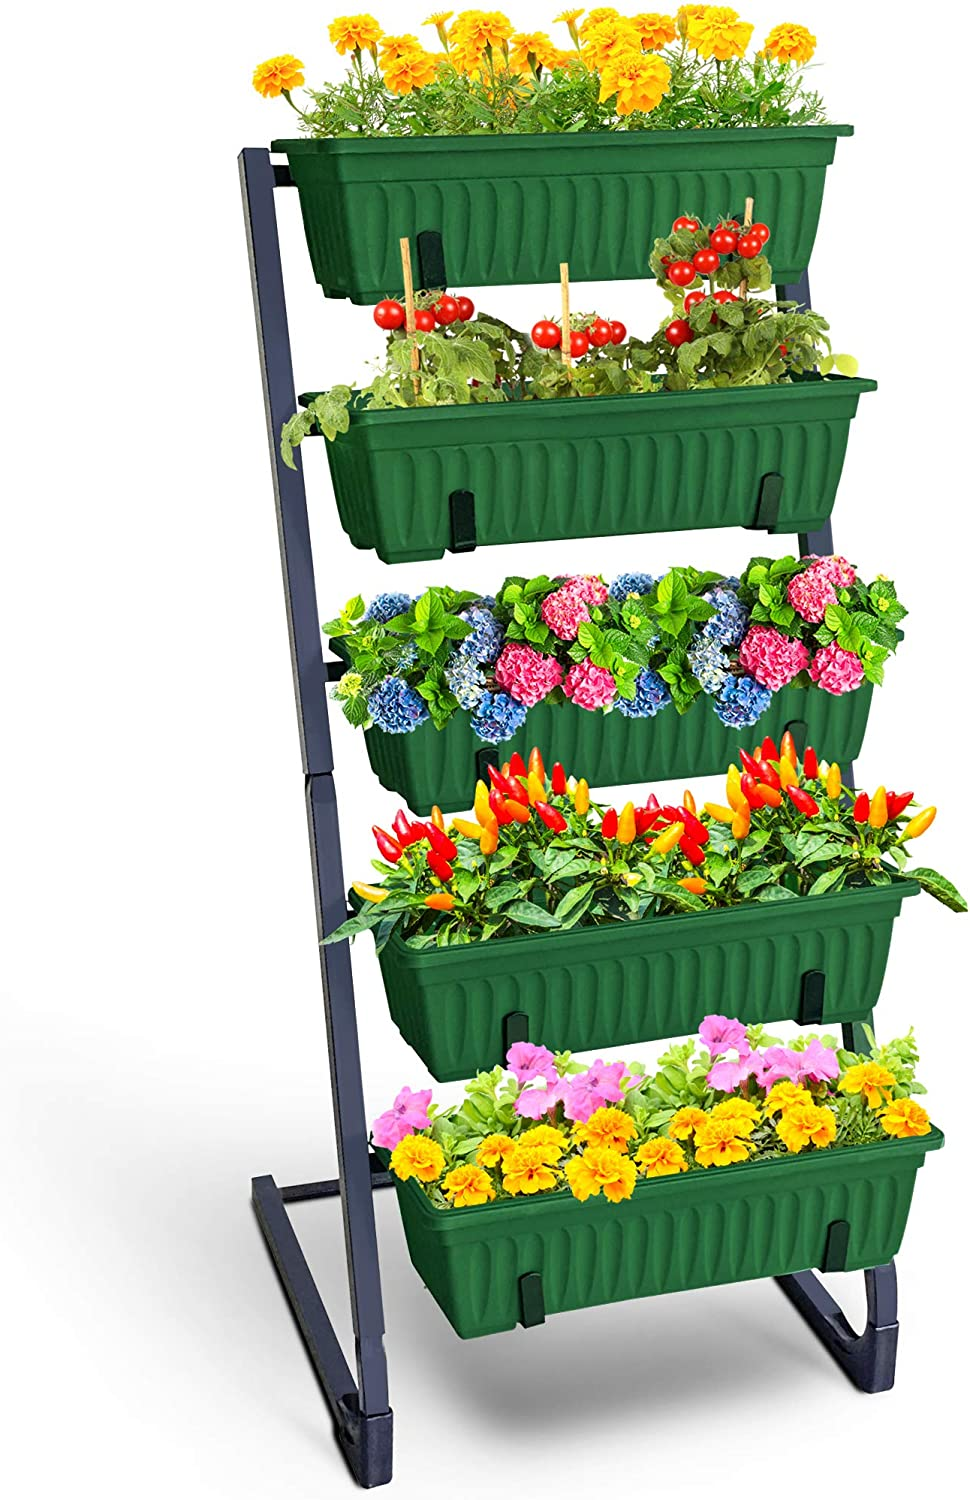 4FT Vertical Raised Garden Bed Freestanding 5 Tier Vertical Planters with Plant Tags Perfect for Herb Vegetables Flower Gardening in Your Patio Balcony Porch Terrace